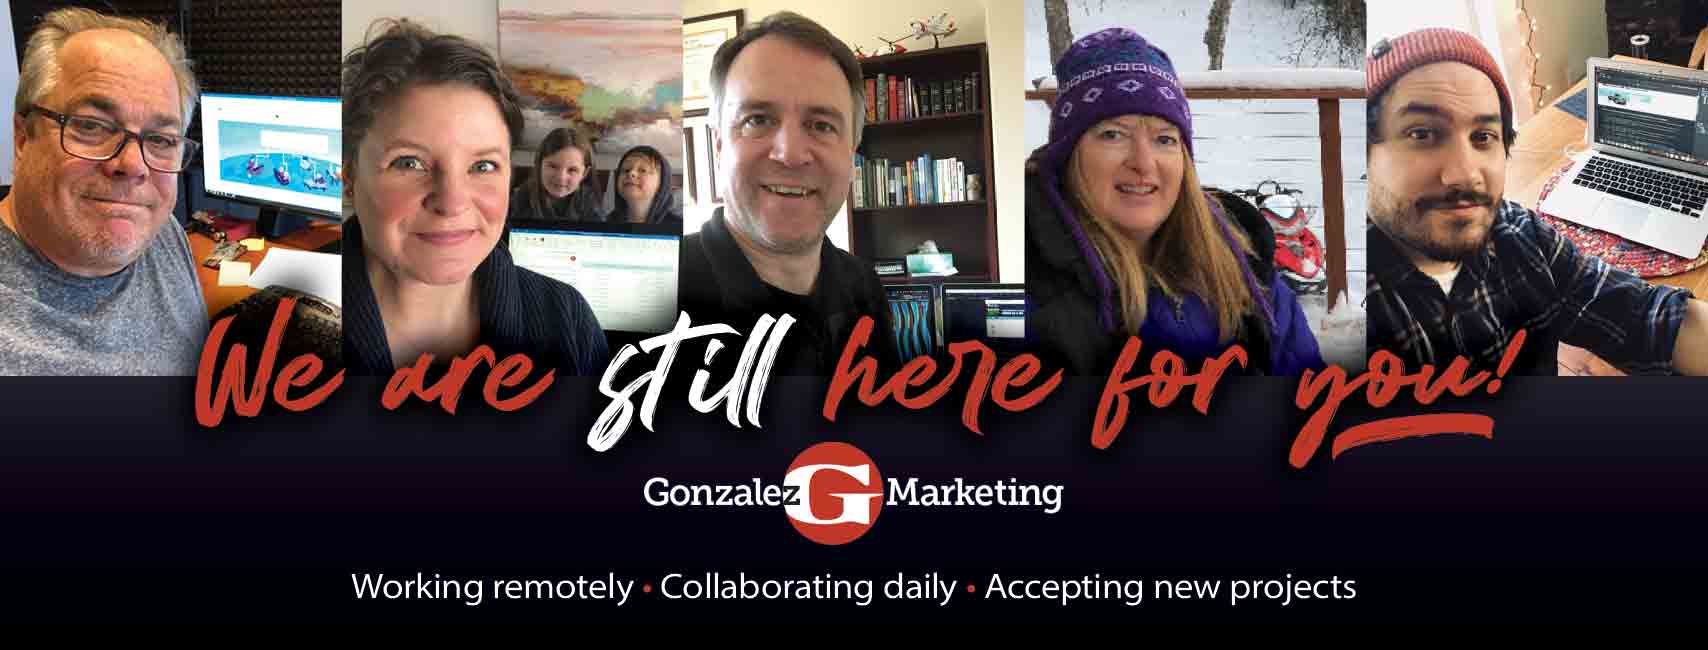 Gonzalez Marketing Team